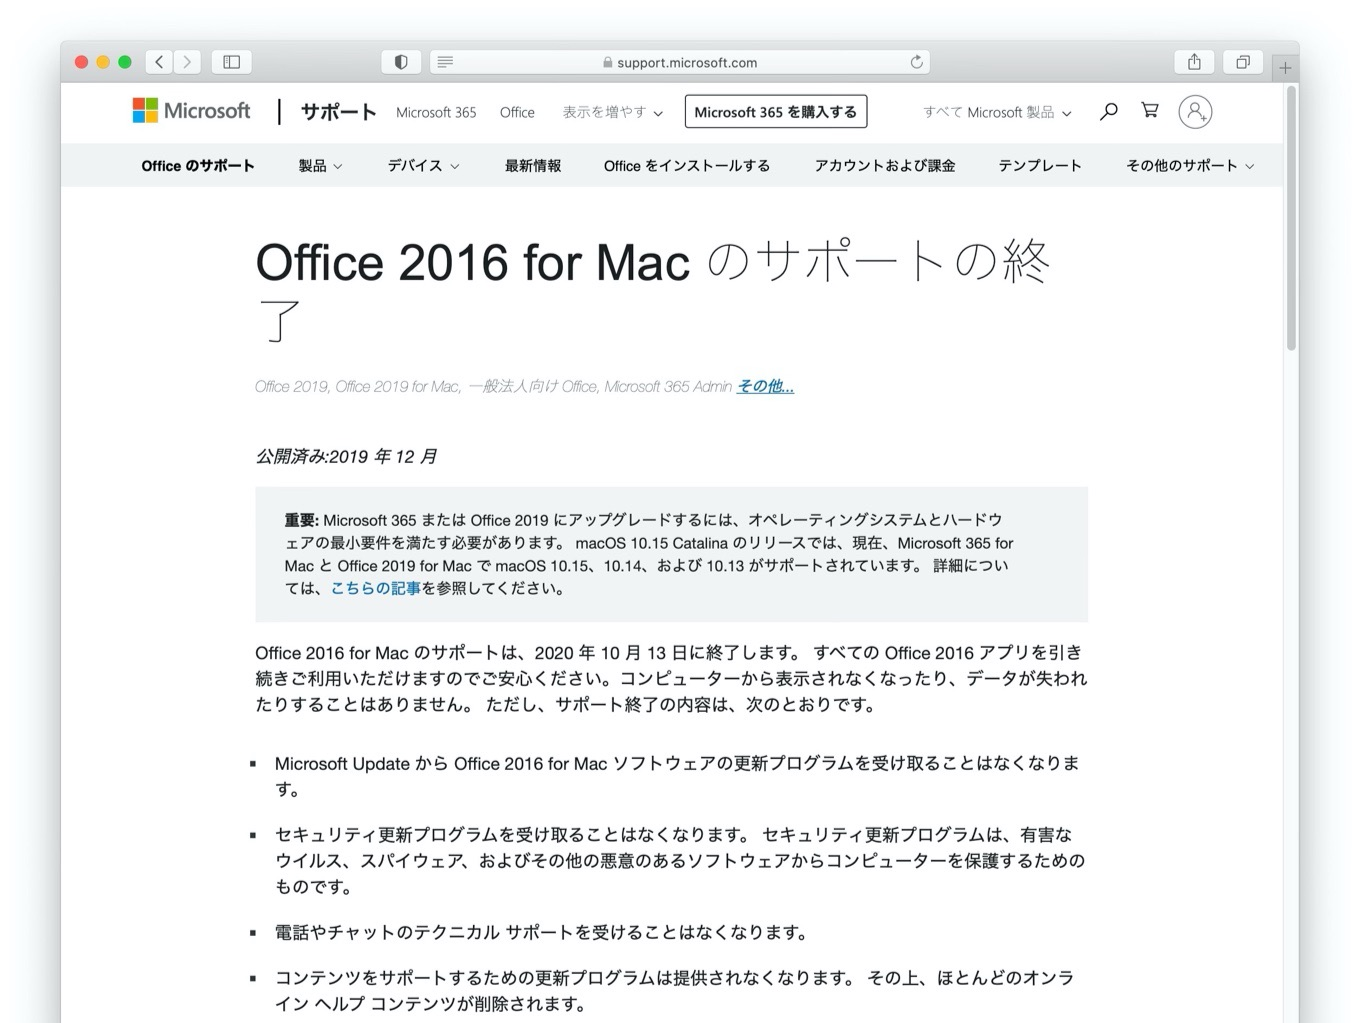 Office 2016 for Mac end of support